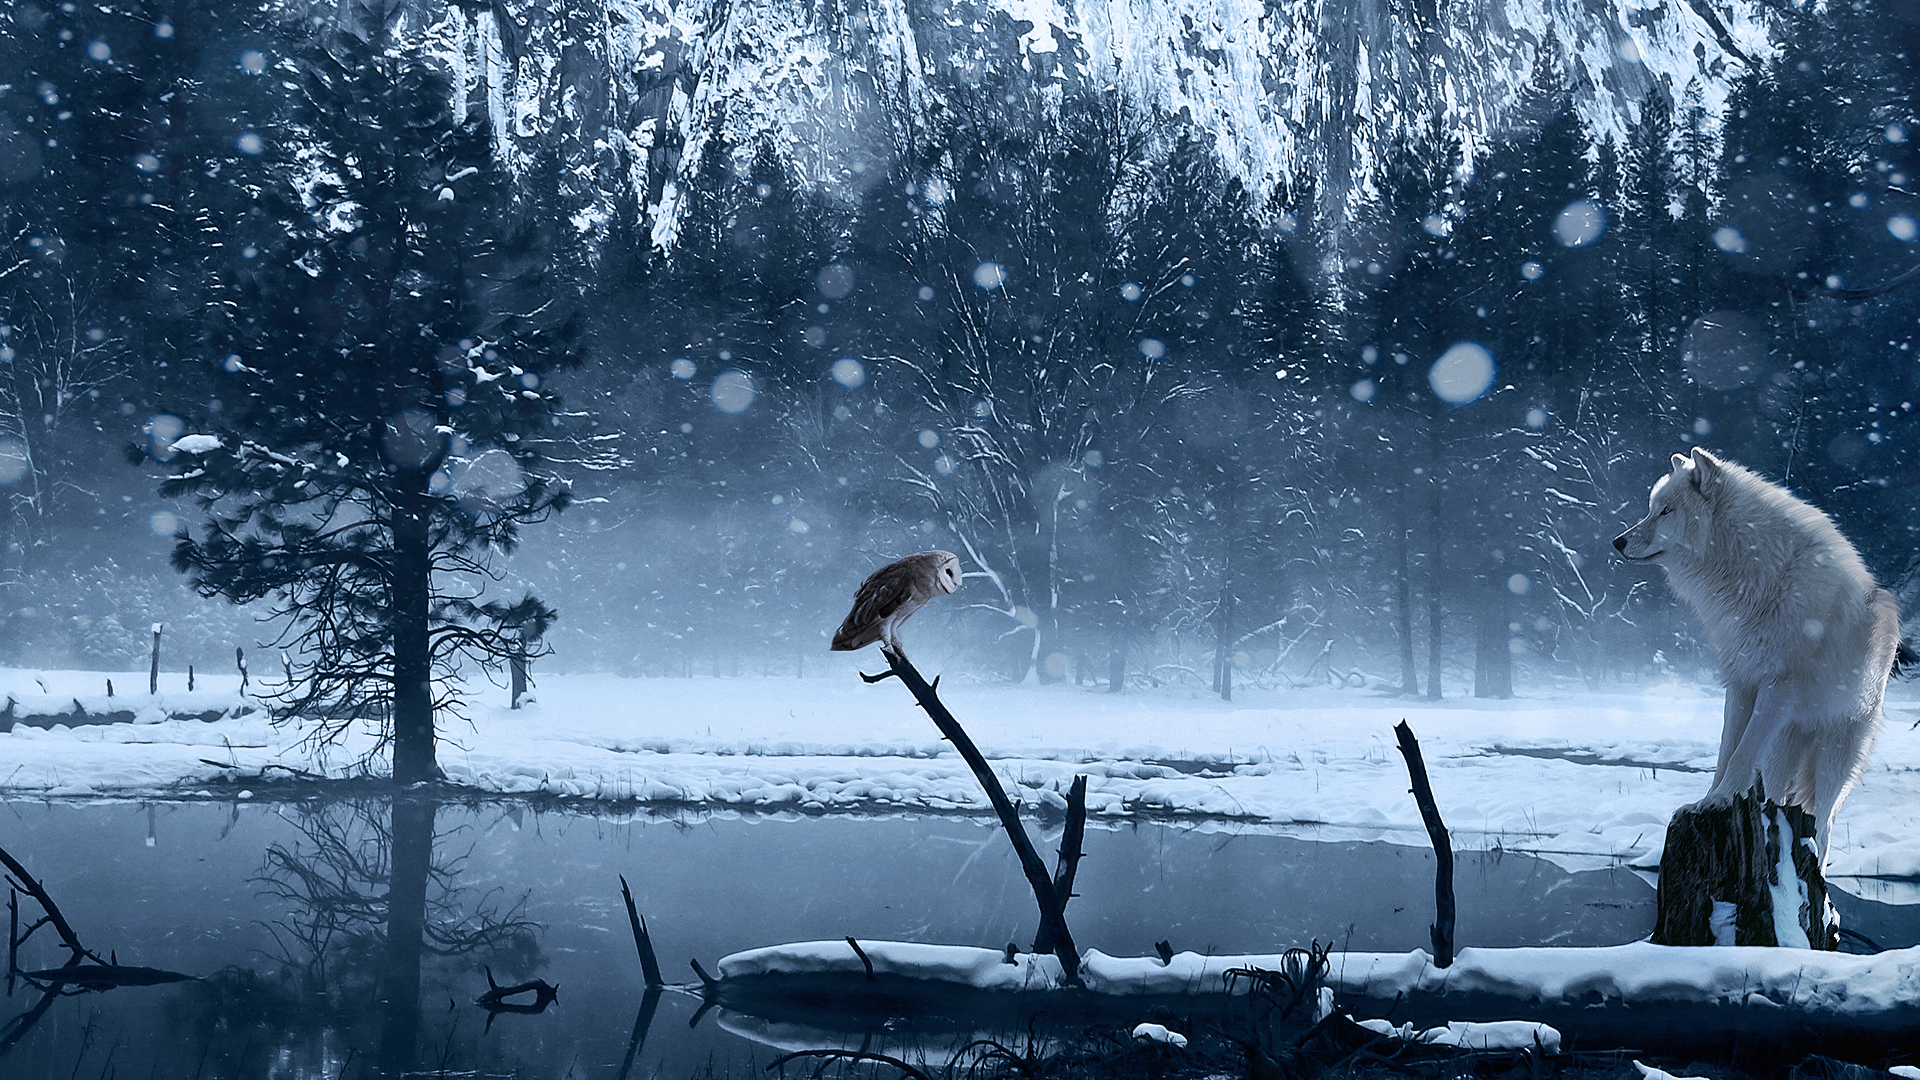 Wallpaper art winter wolf owl snow lake wallpapers rendering 1920x1080